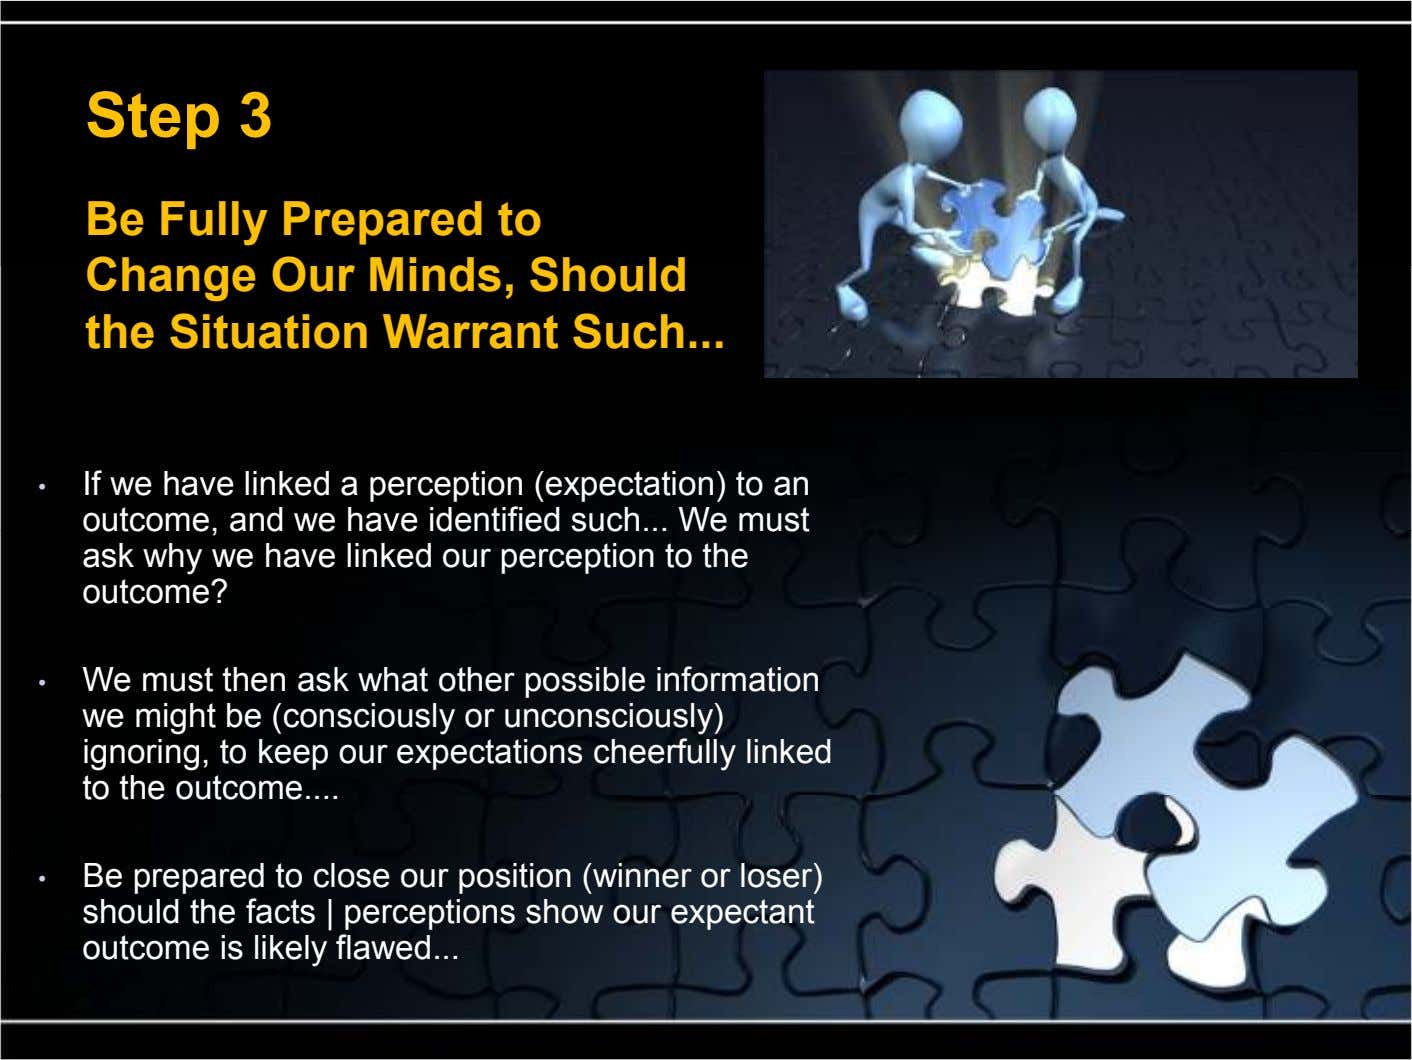 Step 3 Be Fully Prepared to Change Our Minds, Should the Situation Warrant Such ... •